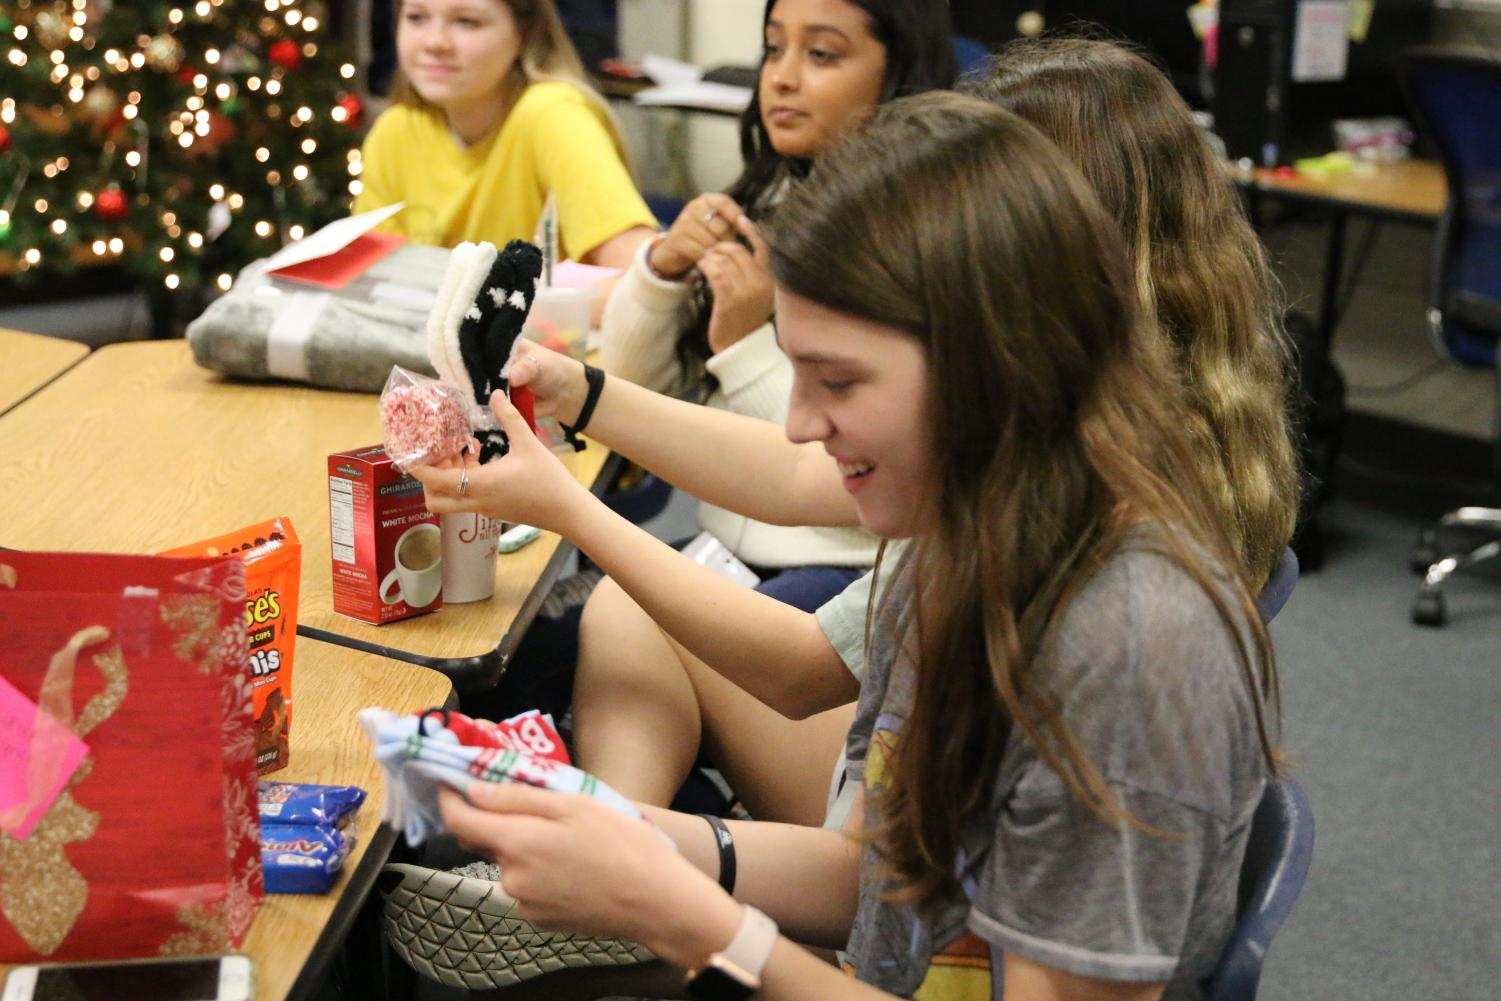 Secret Santa participants are filled with joy while they open the gifts they received.